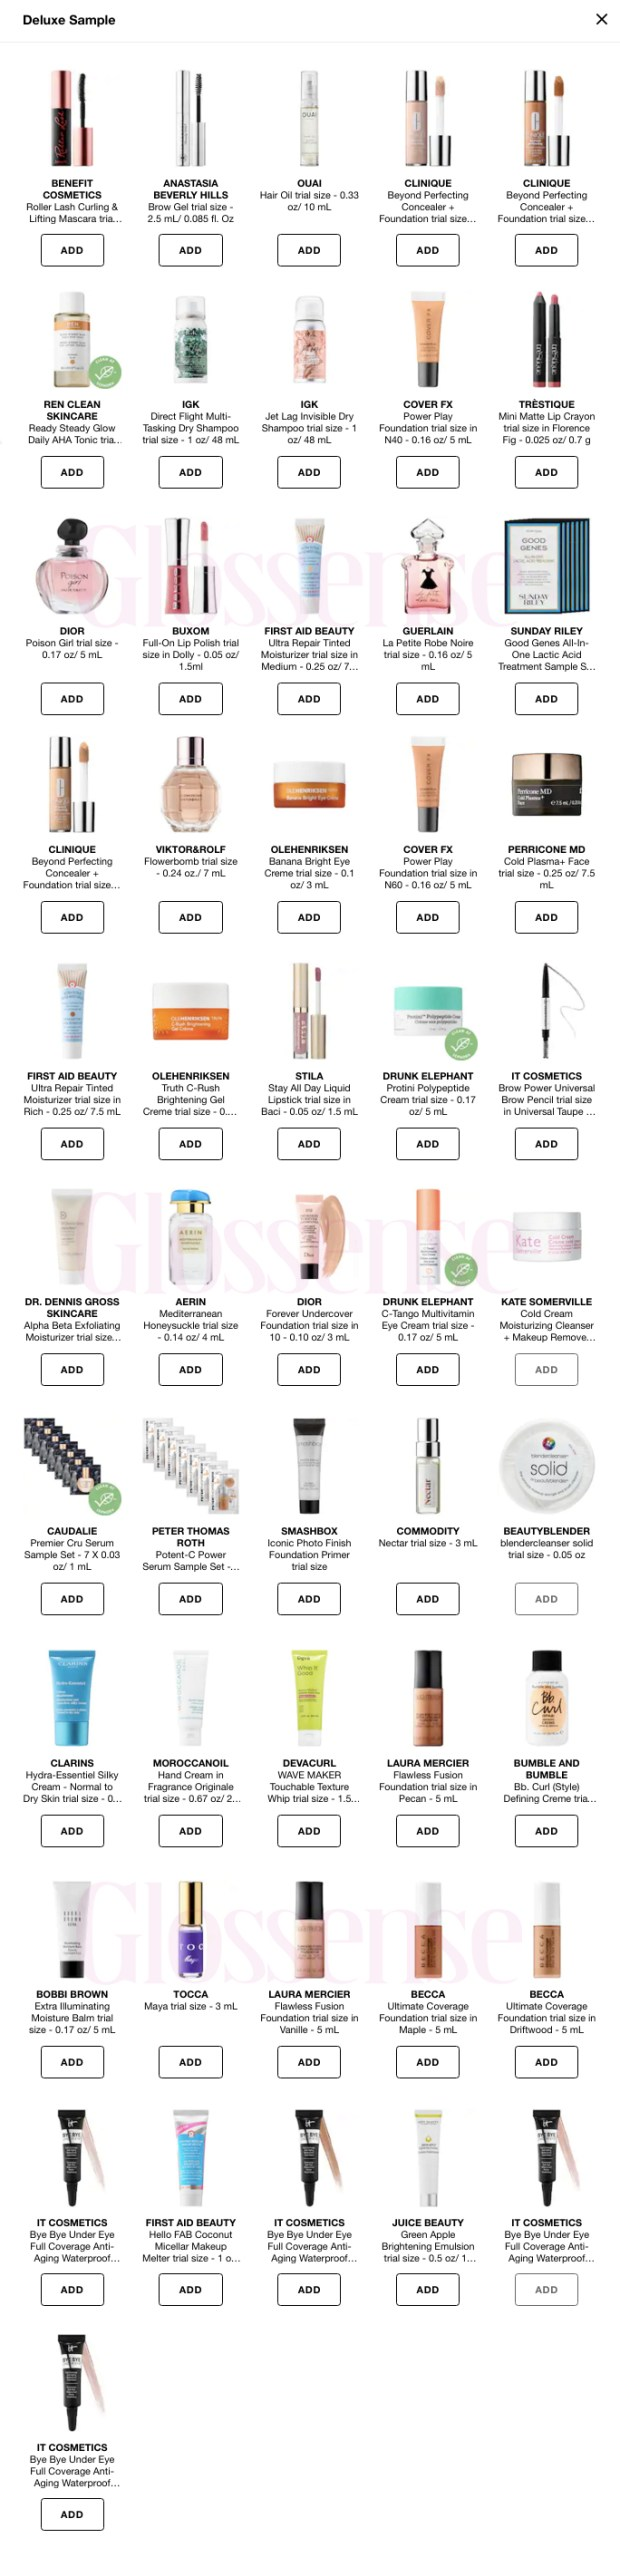 Sephora Canada Promo Codes Canadian Coupon Code MYGIFT Freebies Sephora Offers July 2018 - Glossense